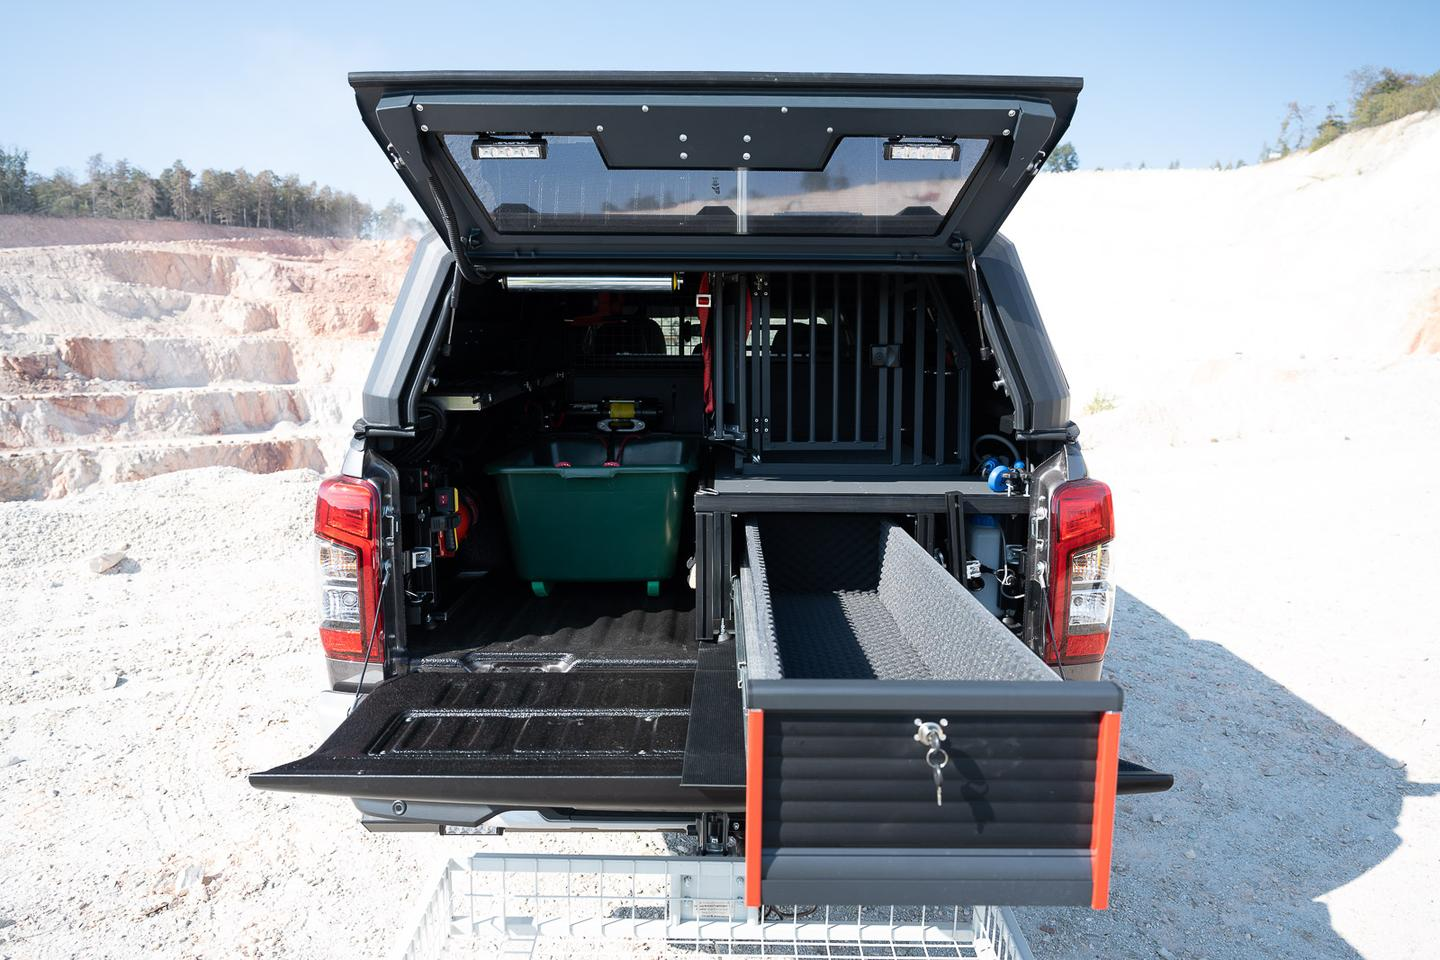 The gun drawer keeps firearms secure, while the dog crate keeps a hunting companion safe and secure